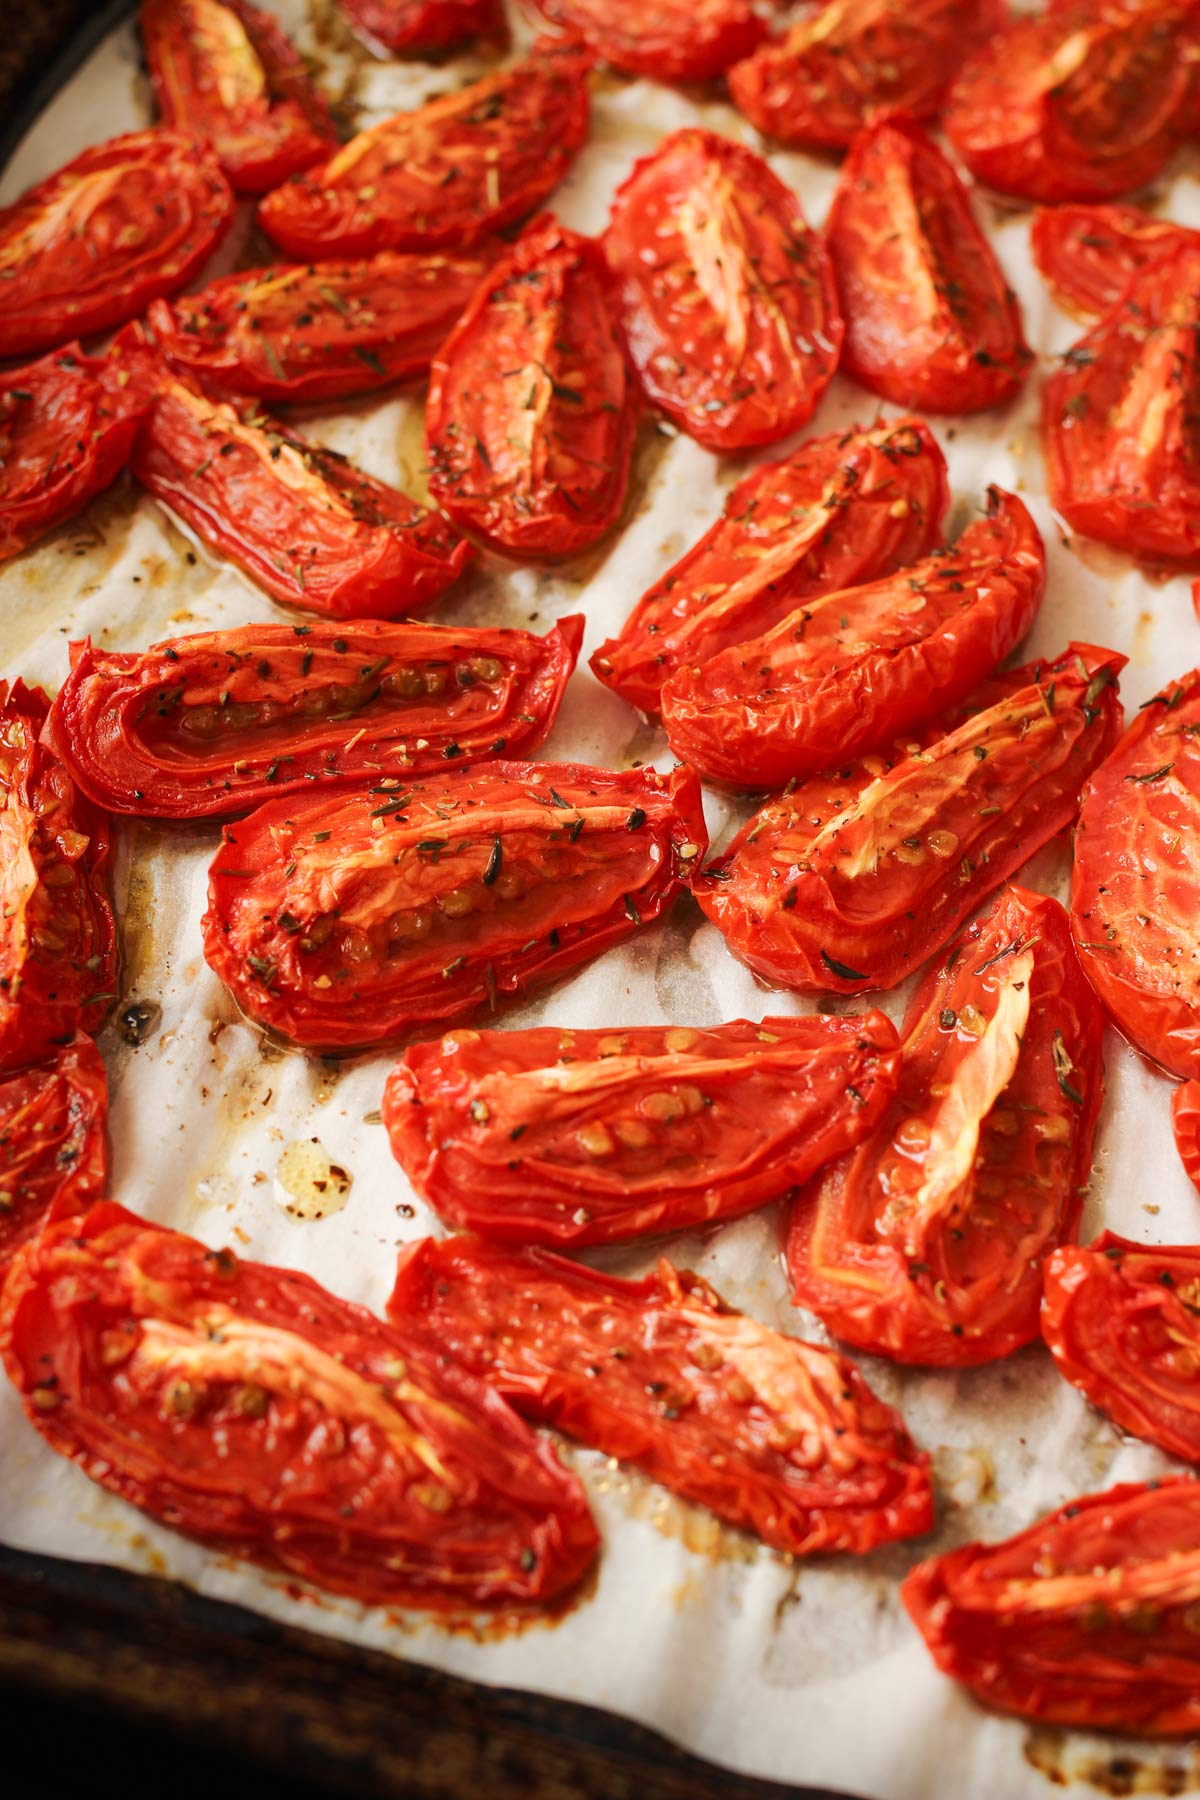 oven roasted tomatoes scattered on parchment on a sheet pan.